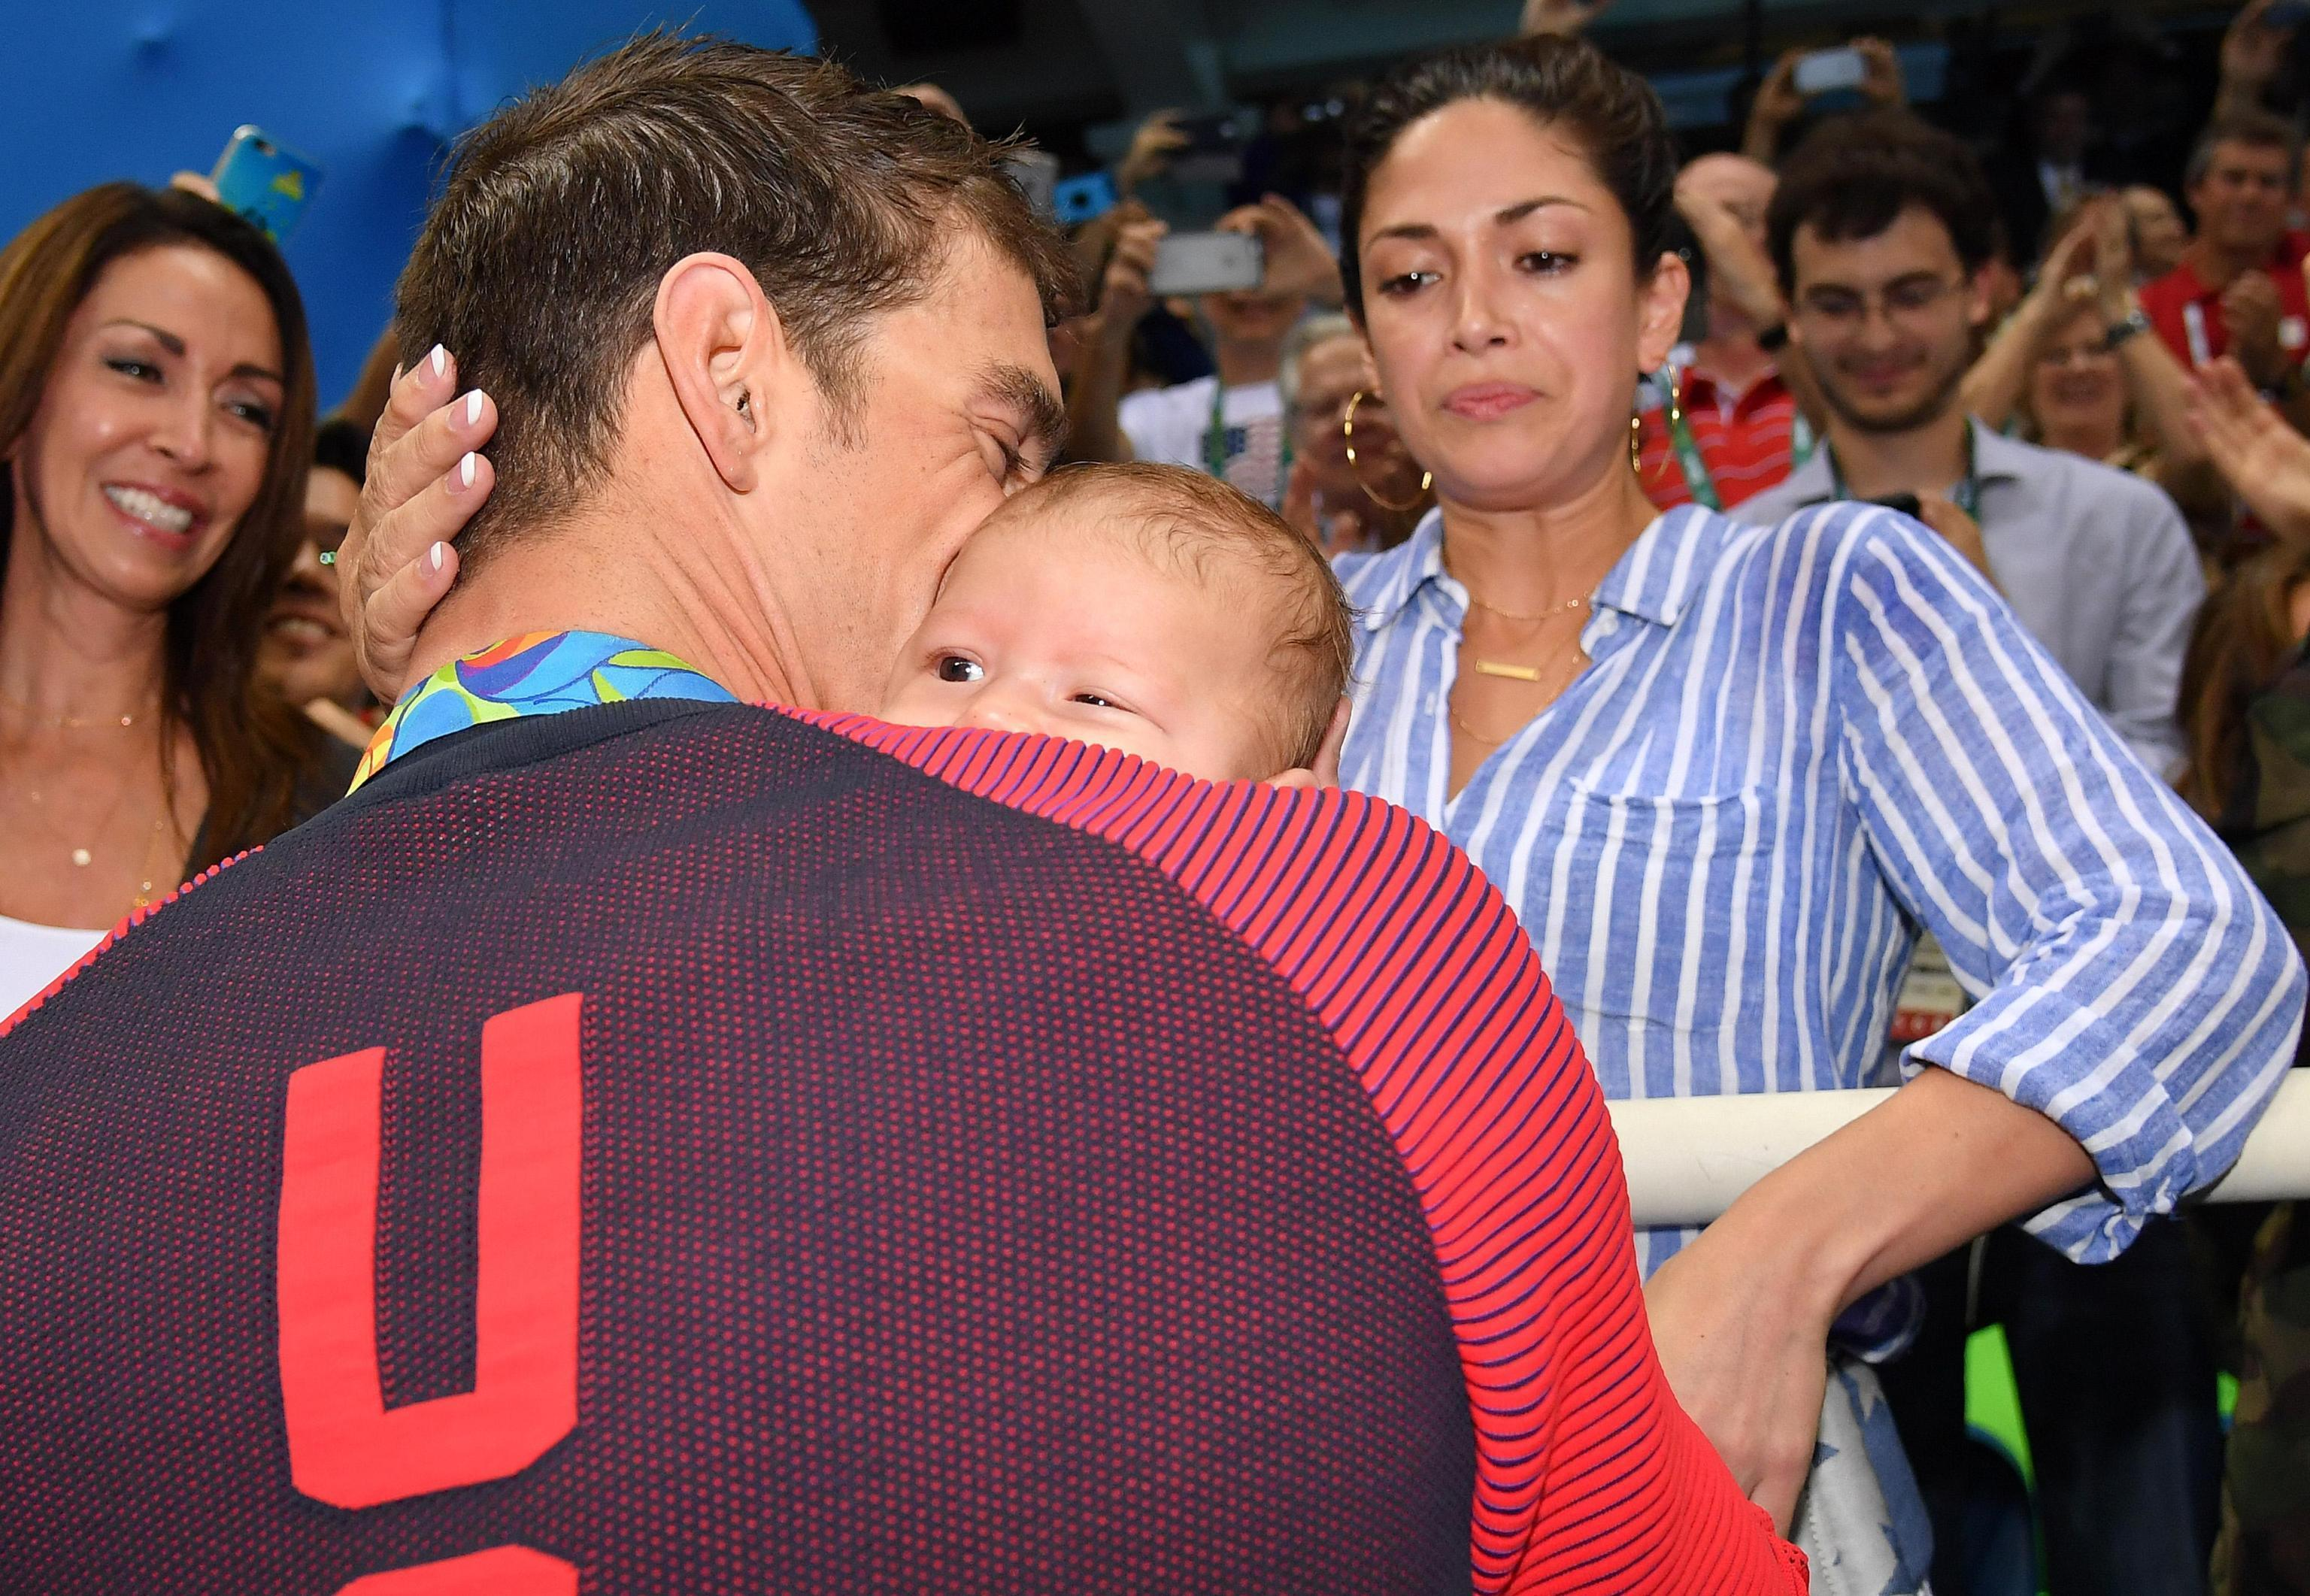 United States' Michael Phelps celebrates winning his gold medal in the men's 200-meter butterfly with his fiancee Nicole Johnson and baby Boomer during the swimming competitions at the 2016 Summer Olympics, Tuesday, Aug. 9, 2016, in Rio de Janeiro, Brazil